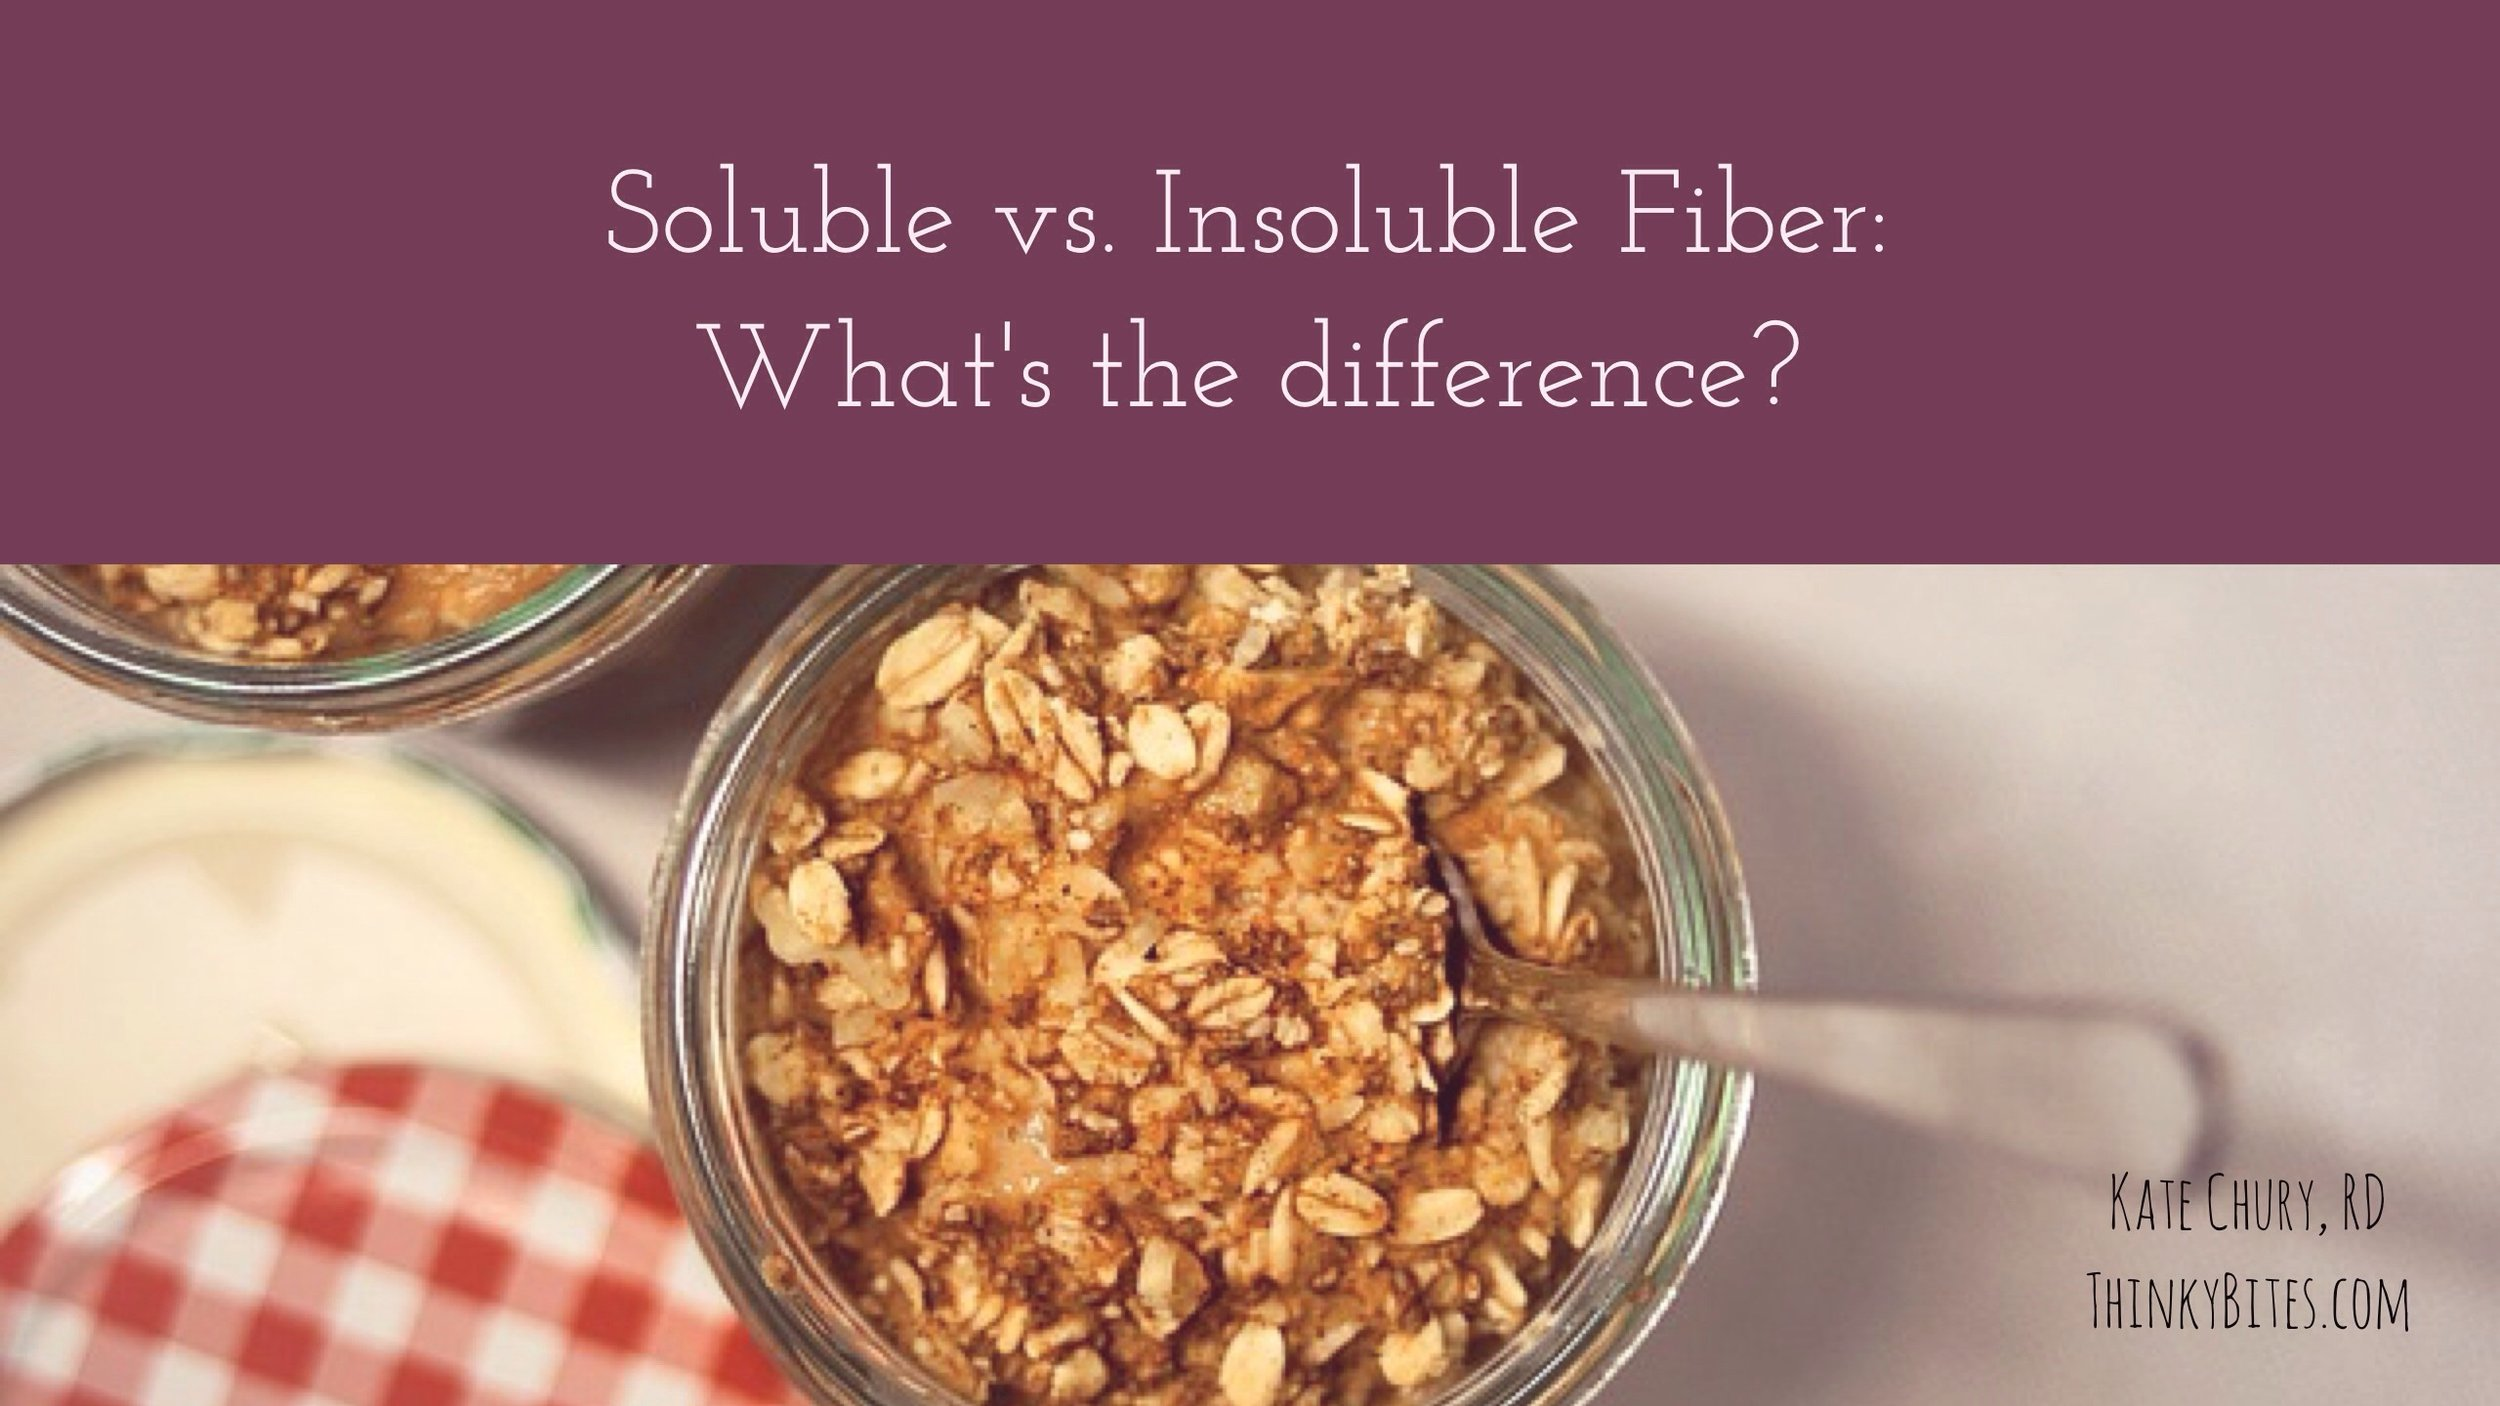 Soluble vs. Insoluble Fiber: What's the Difference?